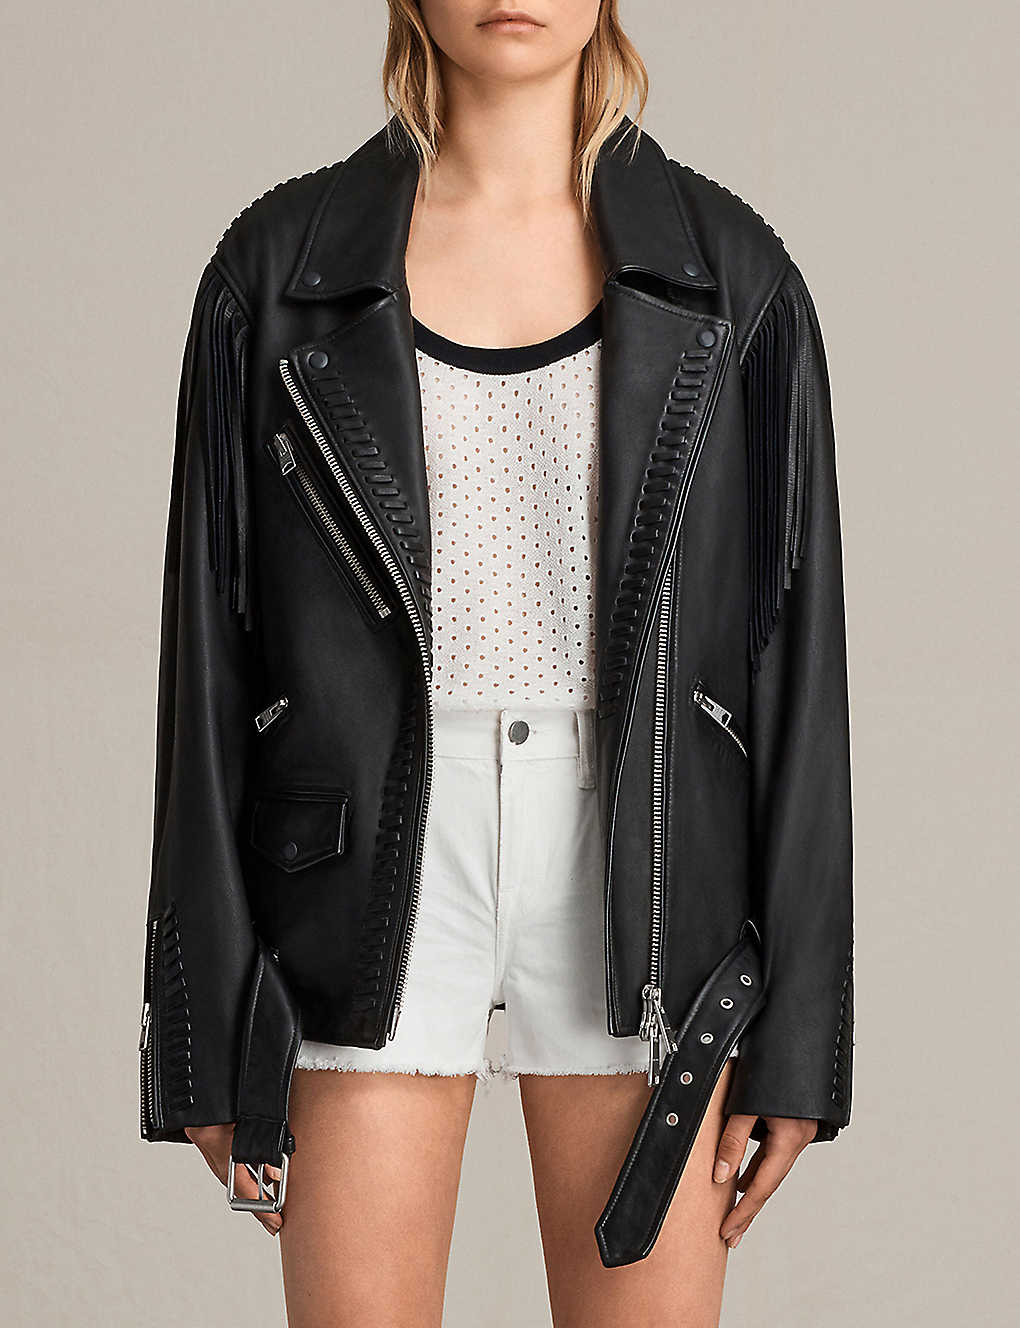 79e10a7d242 ALLSAINTS Trevett leather jacket. Currently unavailable. This product ...